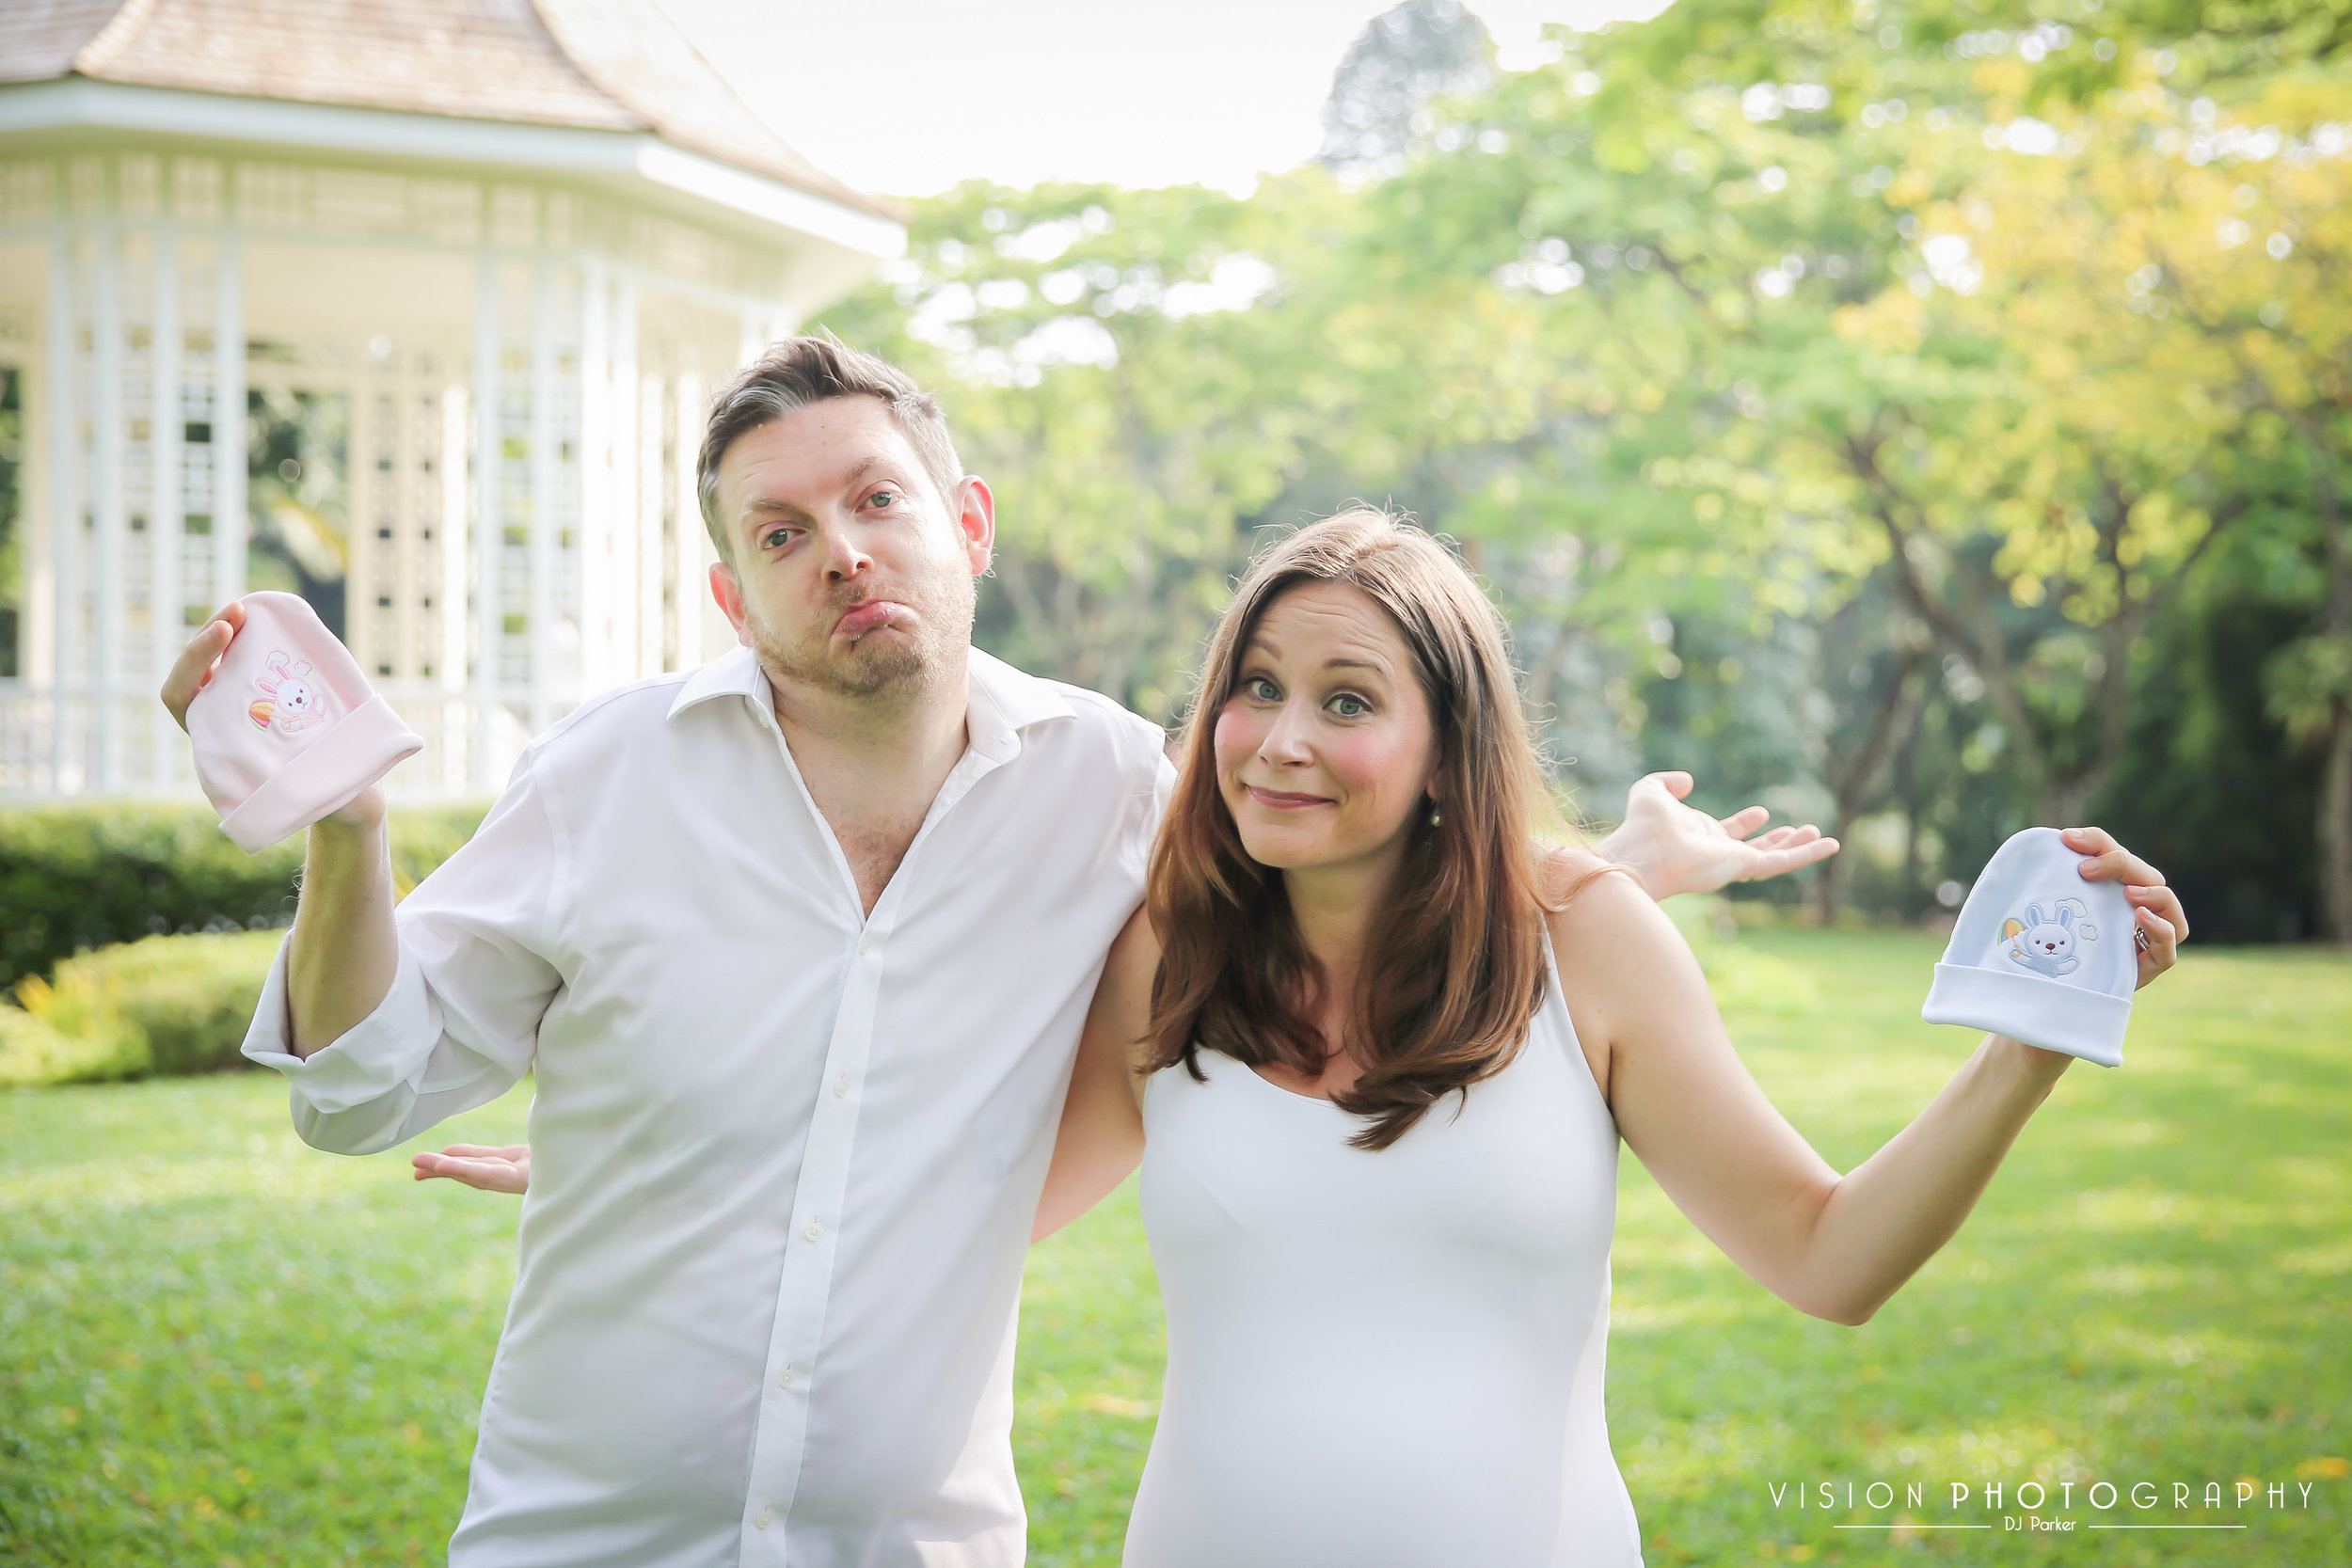 Outdoor maternity Botanic Gardens